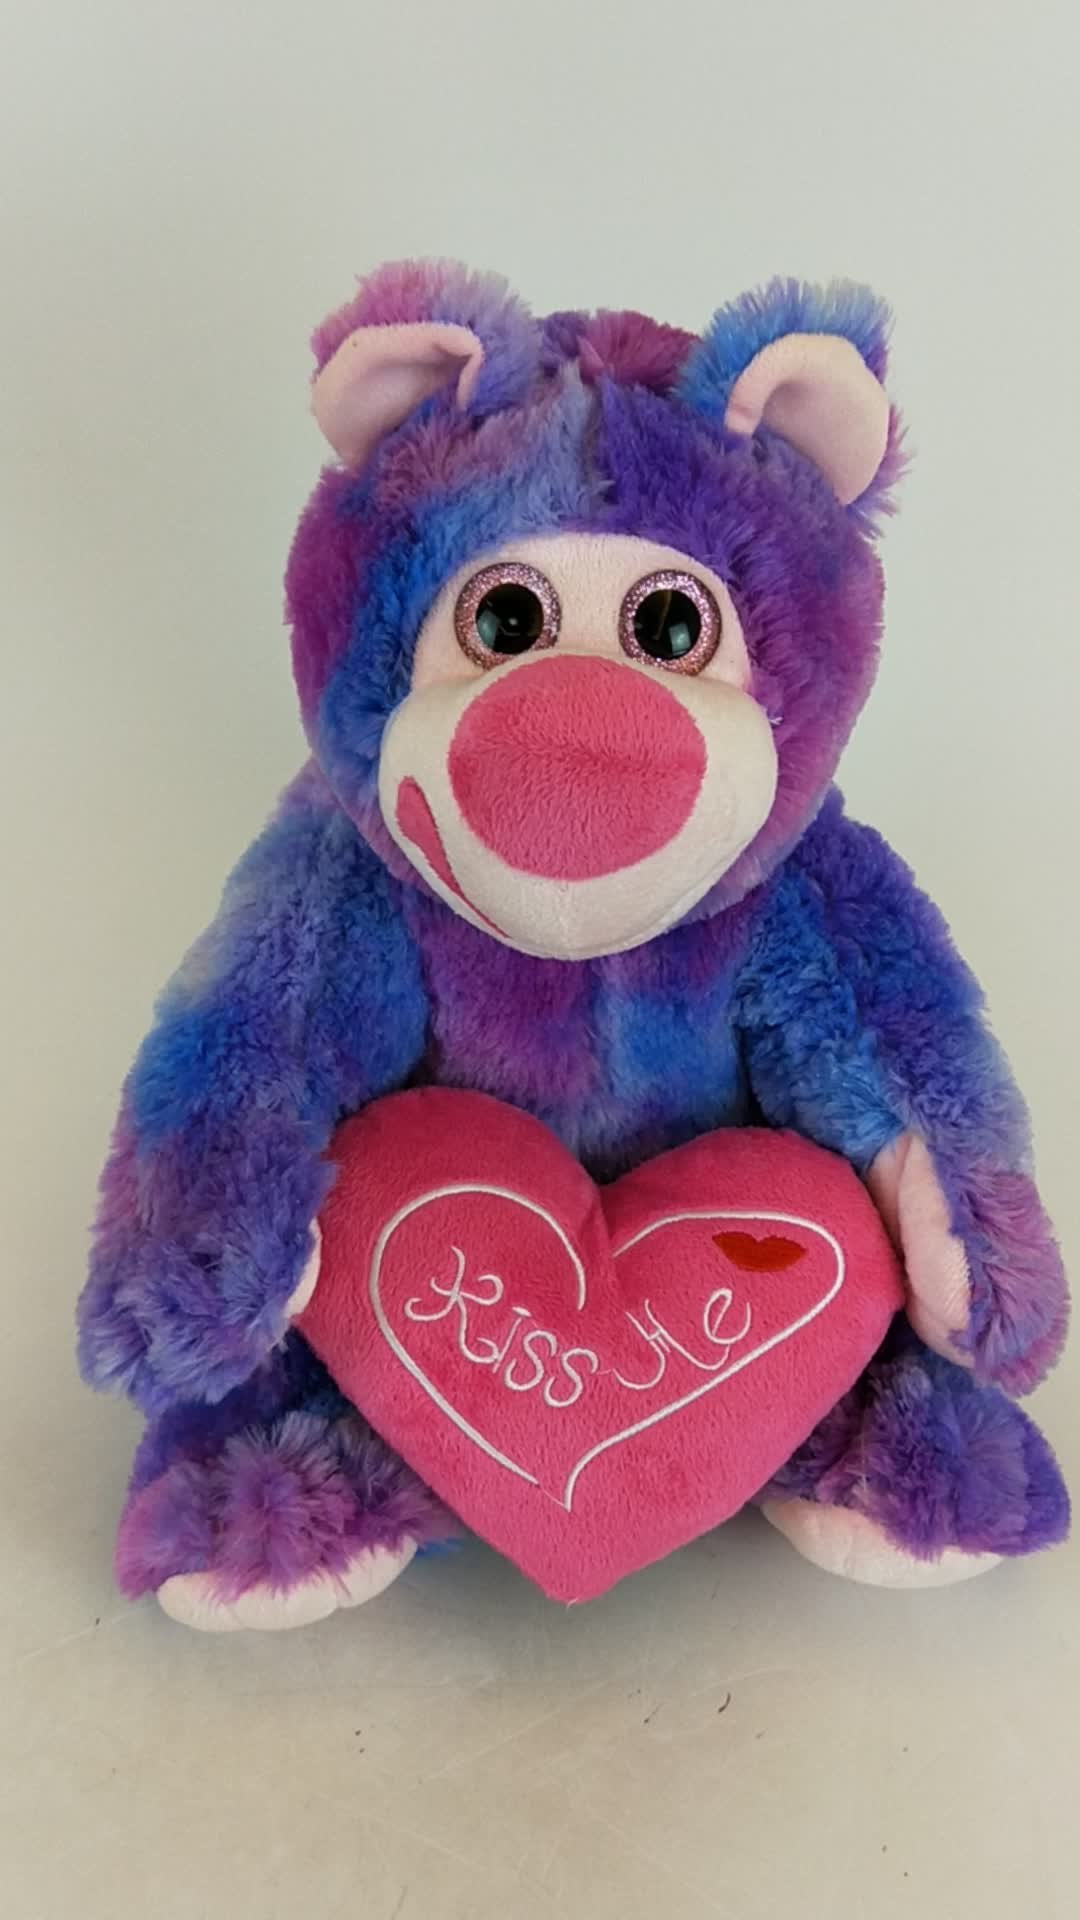 Manufacturer's custom plush toy valentine's day gift stuffed plush bear with  heart